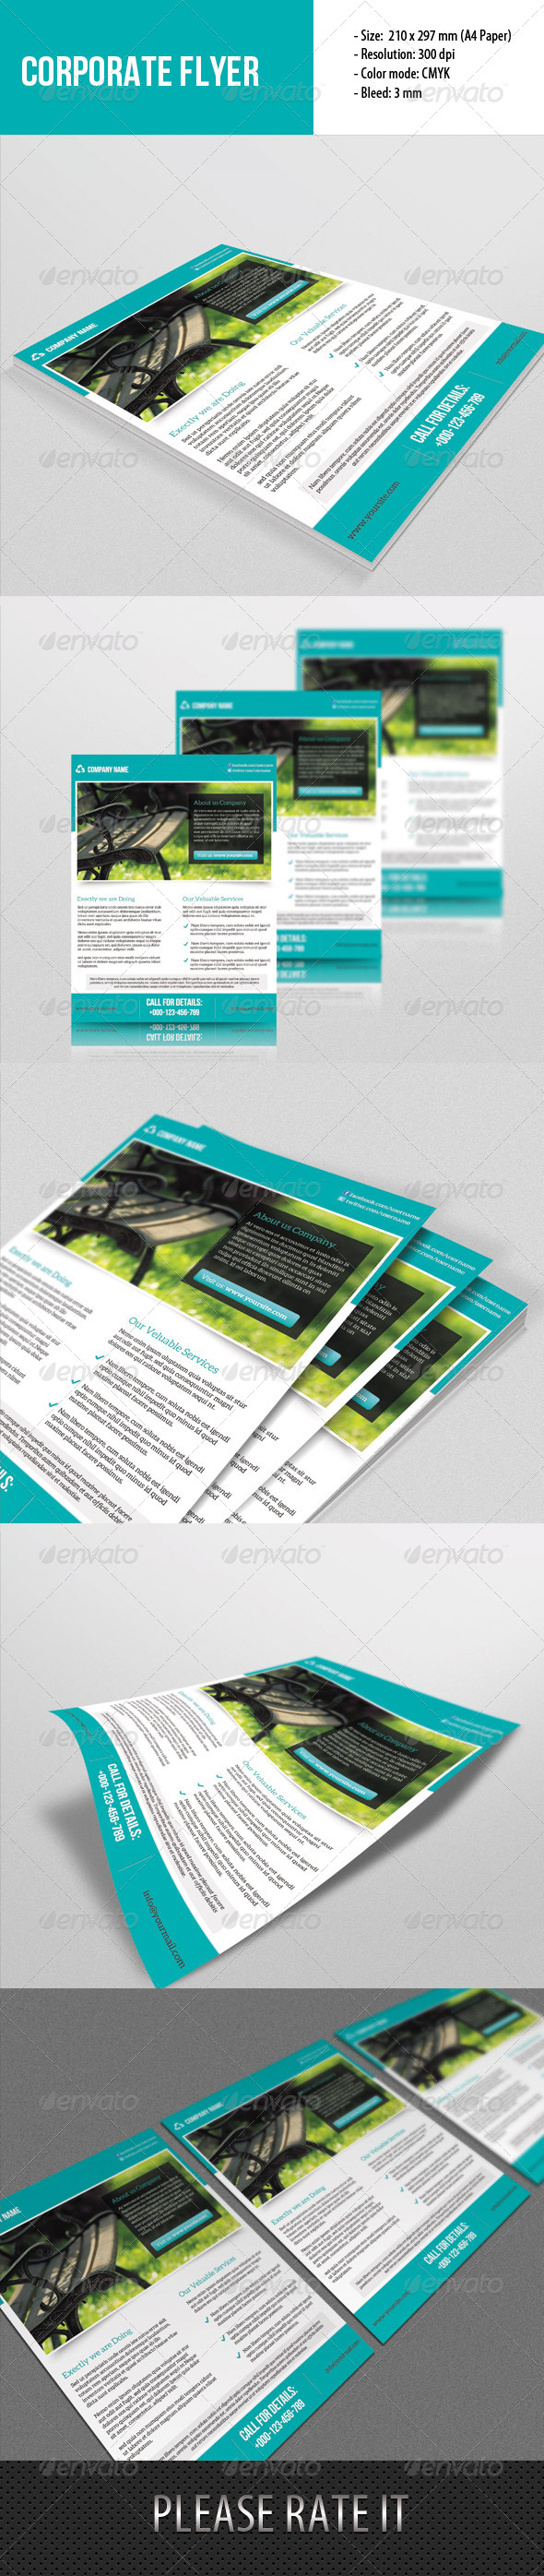 GraphicRiver Corporate Flyer Template 6660254